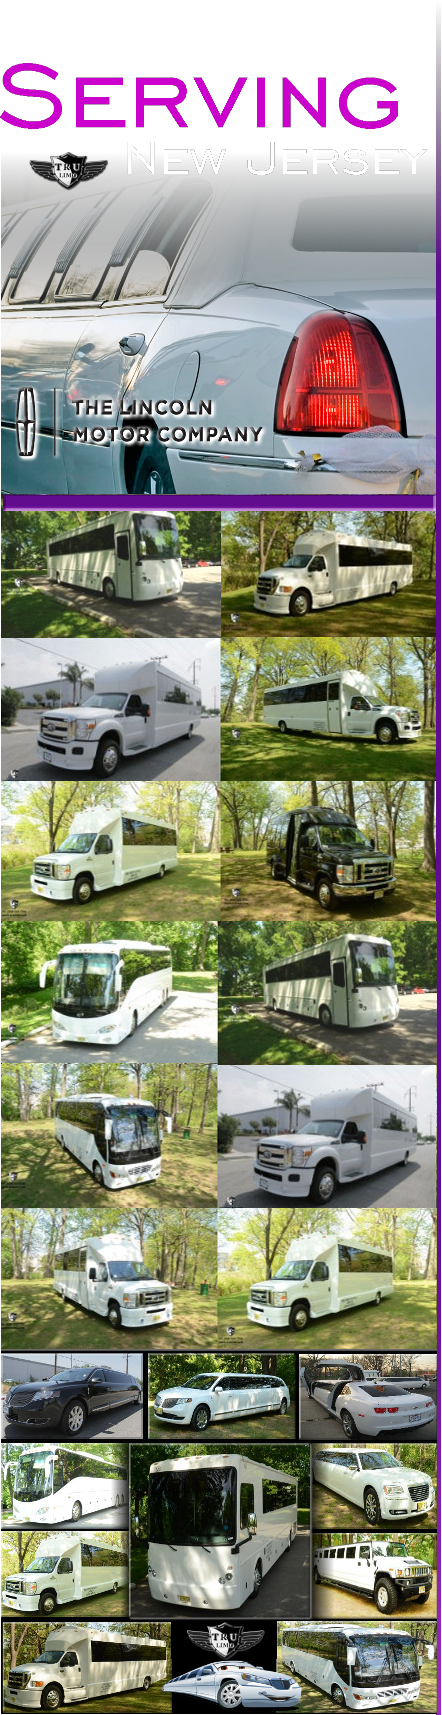 nj townships party bus limos LIMO NJ RENTAL SERVICE